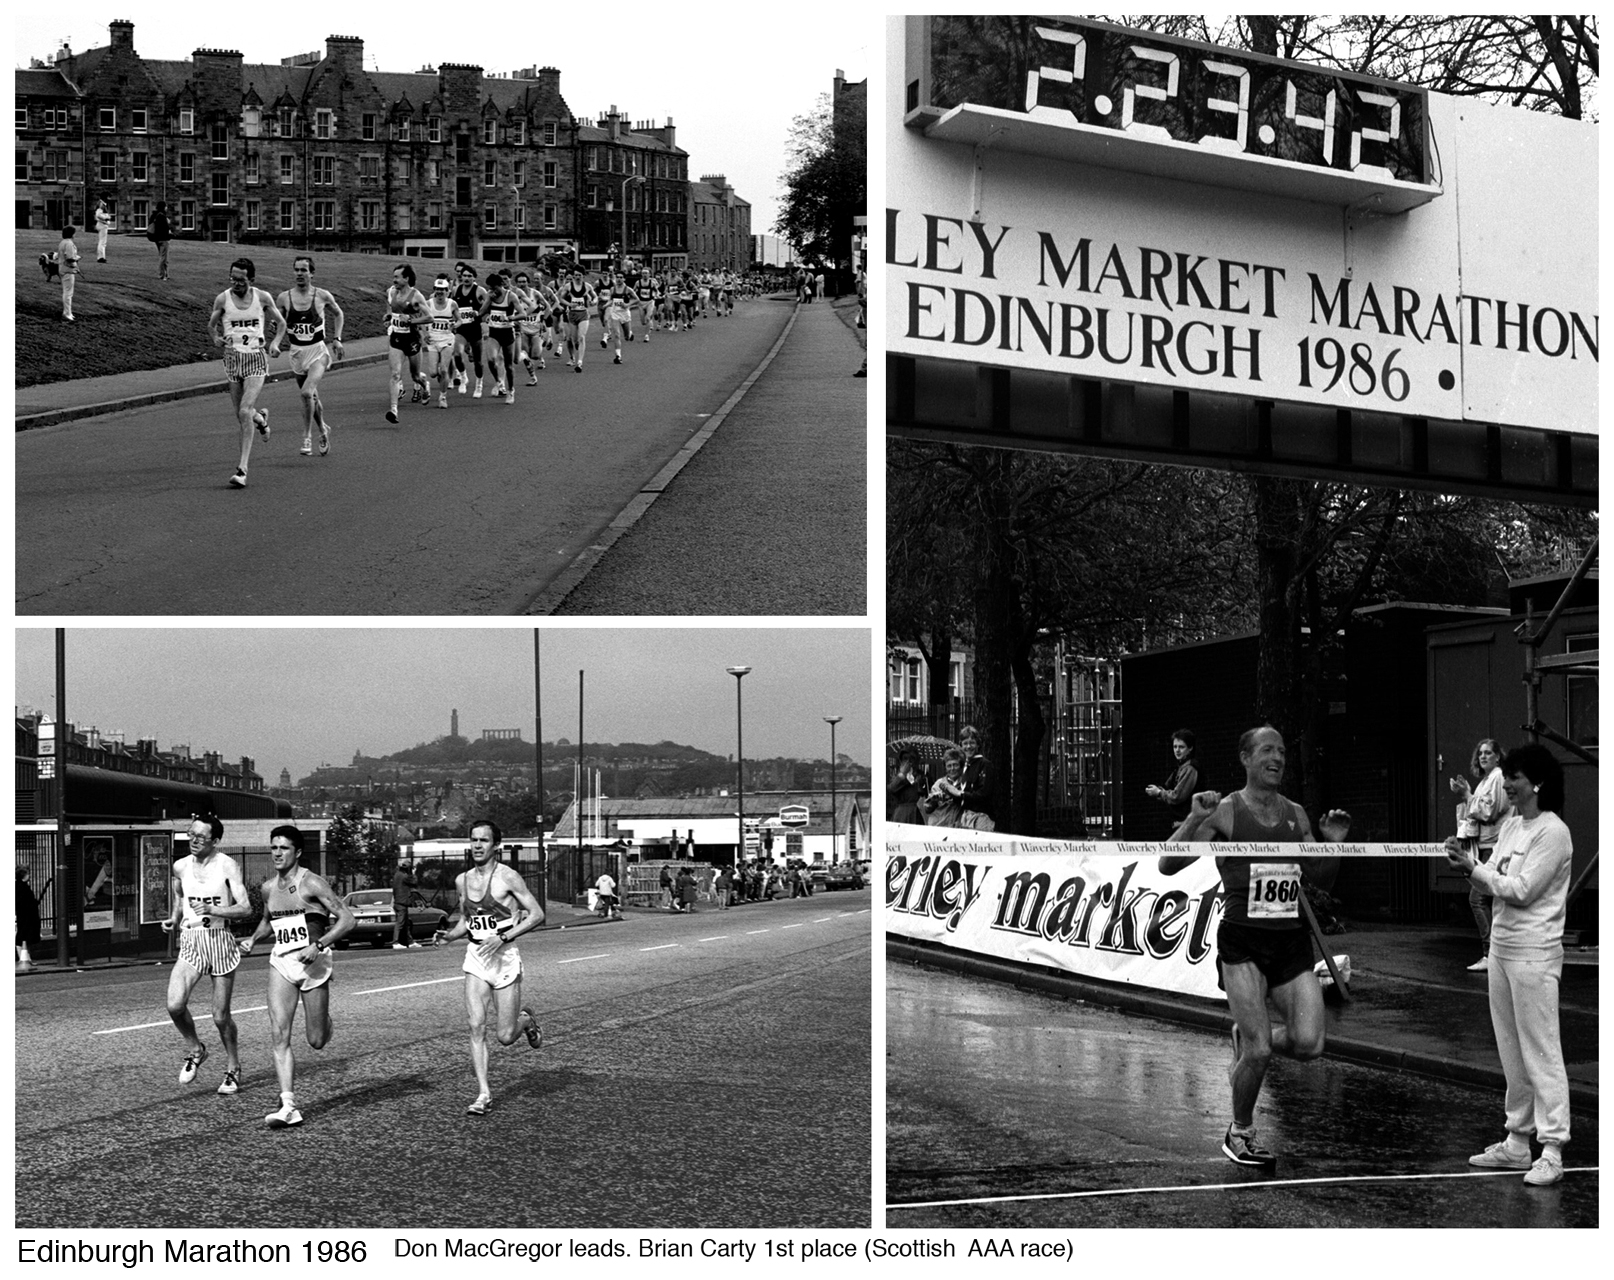 D MacGregor, B Carty - Edinburgh Marathon, 1986